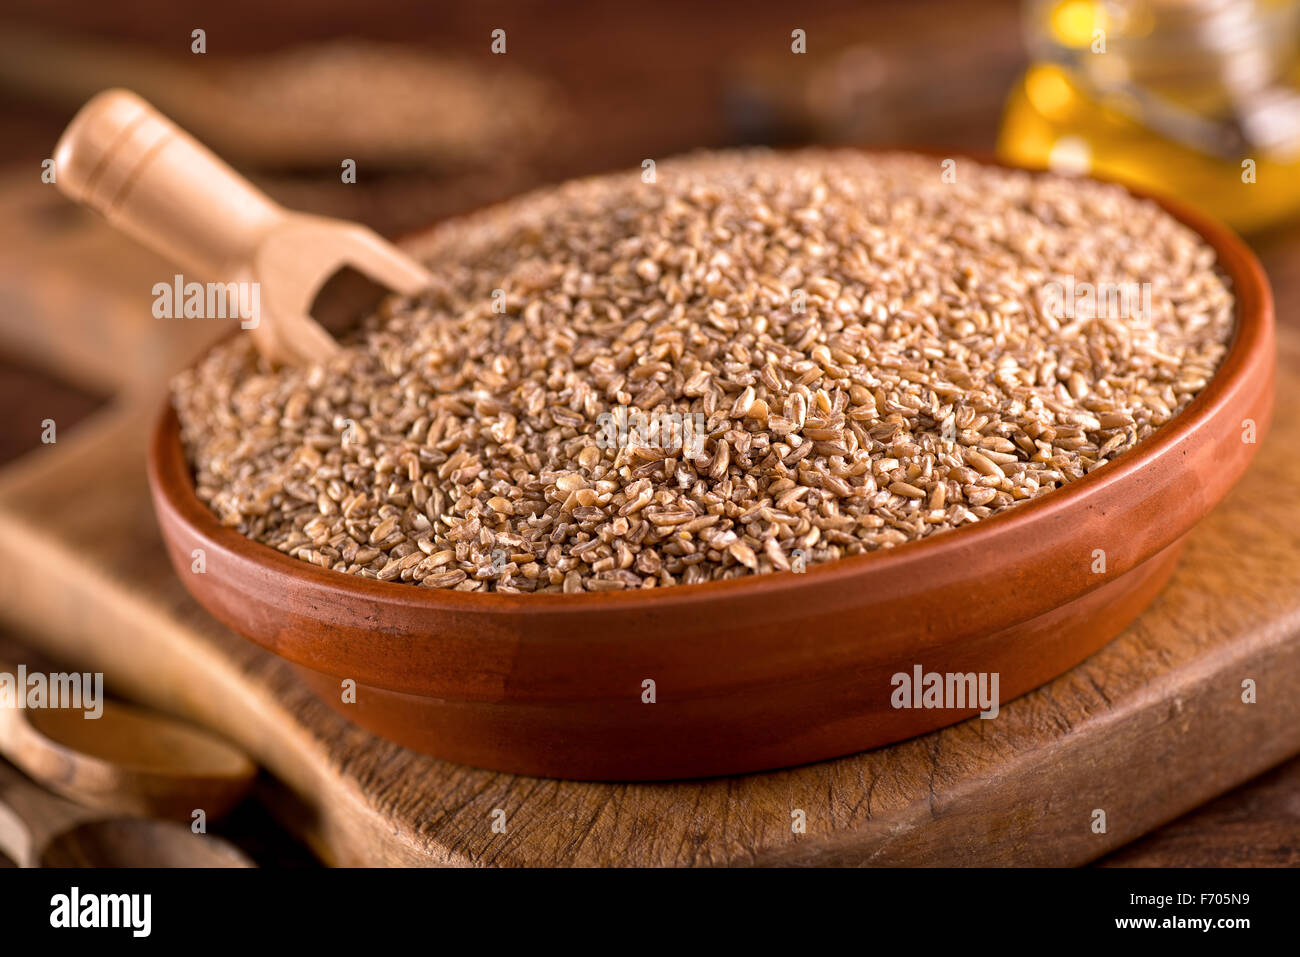 A bowl of raw bulgar wheat against a rustic background. - Stock Image